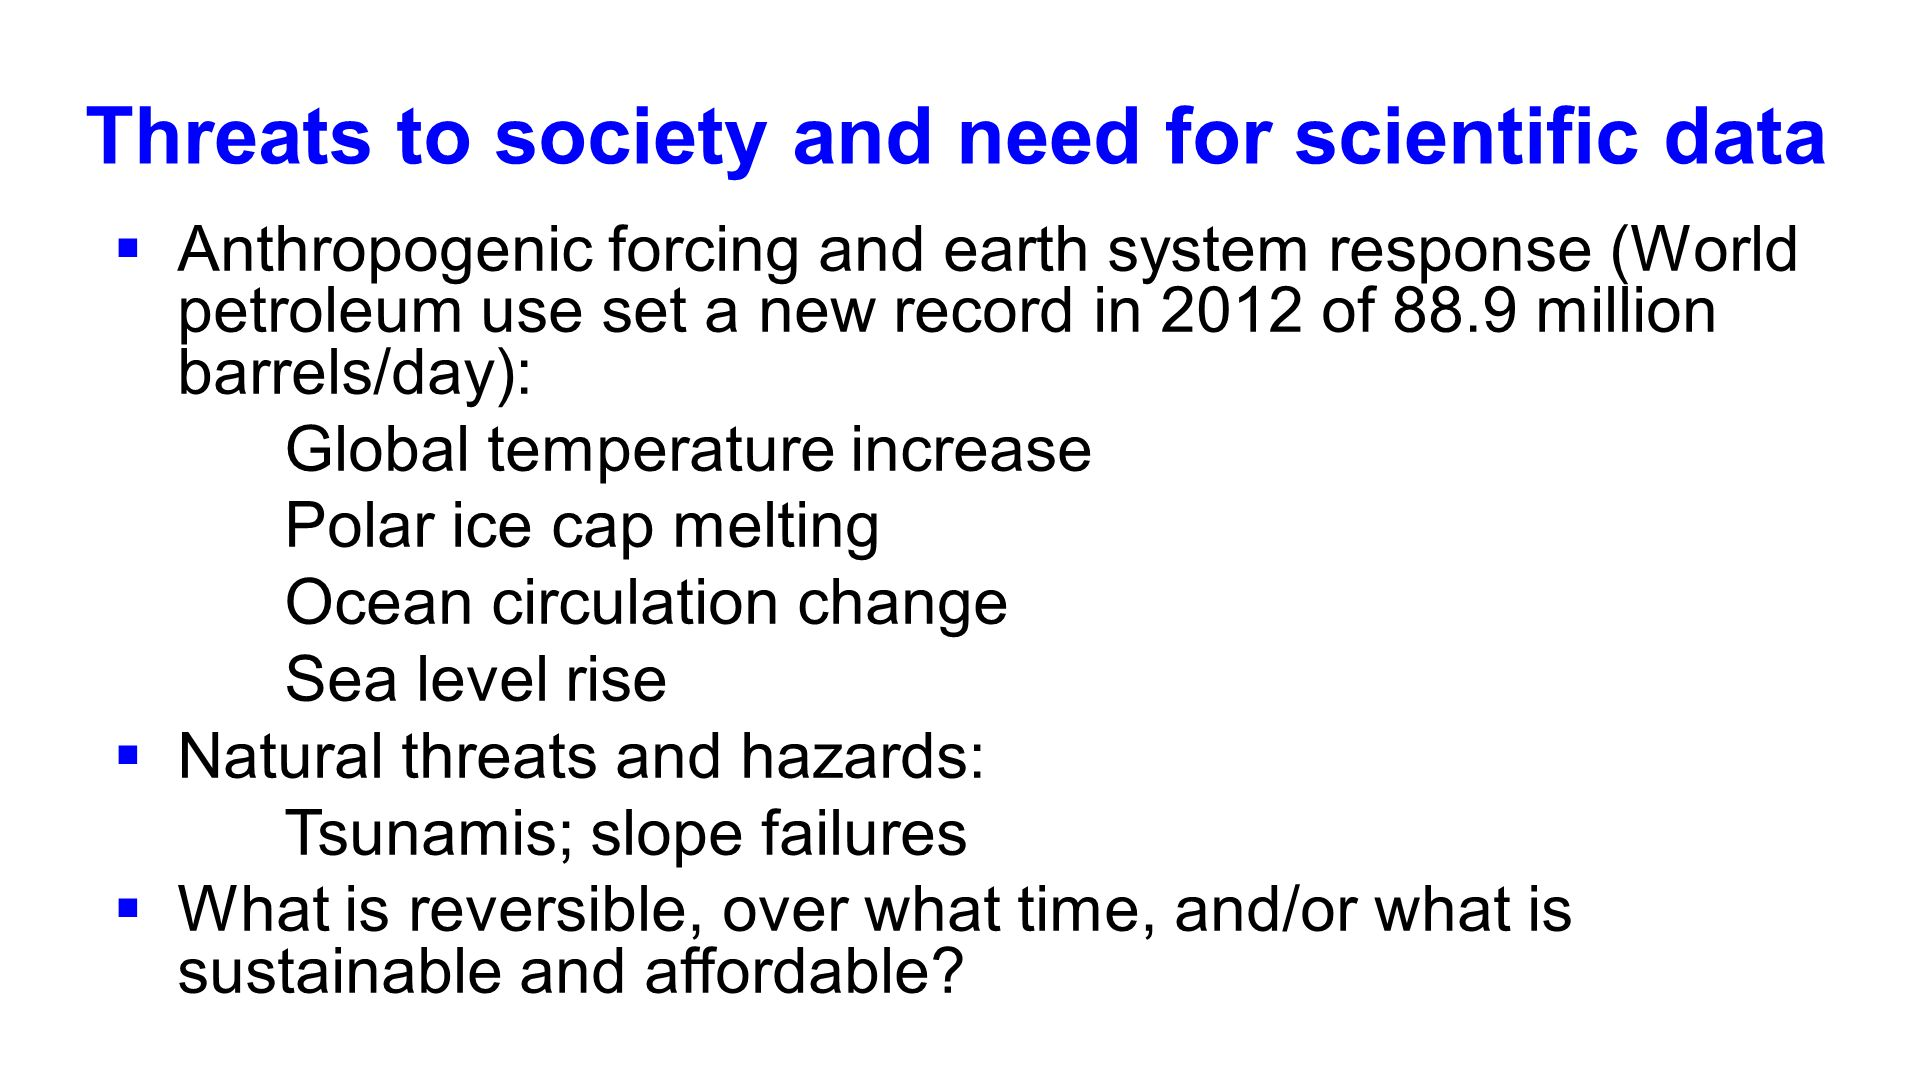 Threats to society and need for scientific data Anthropogenic forcing and earth system response (World petroleum use set a new record in 2012 of 88.9